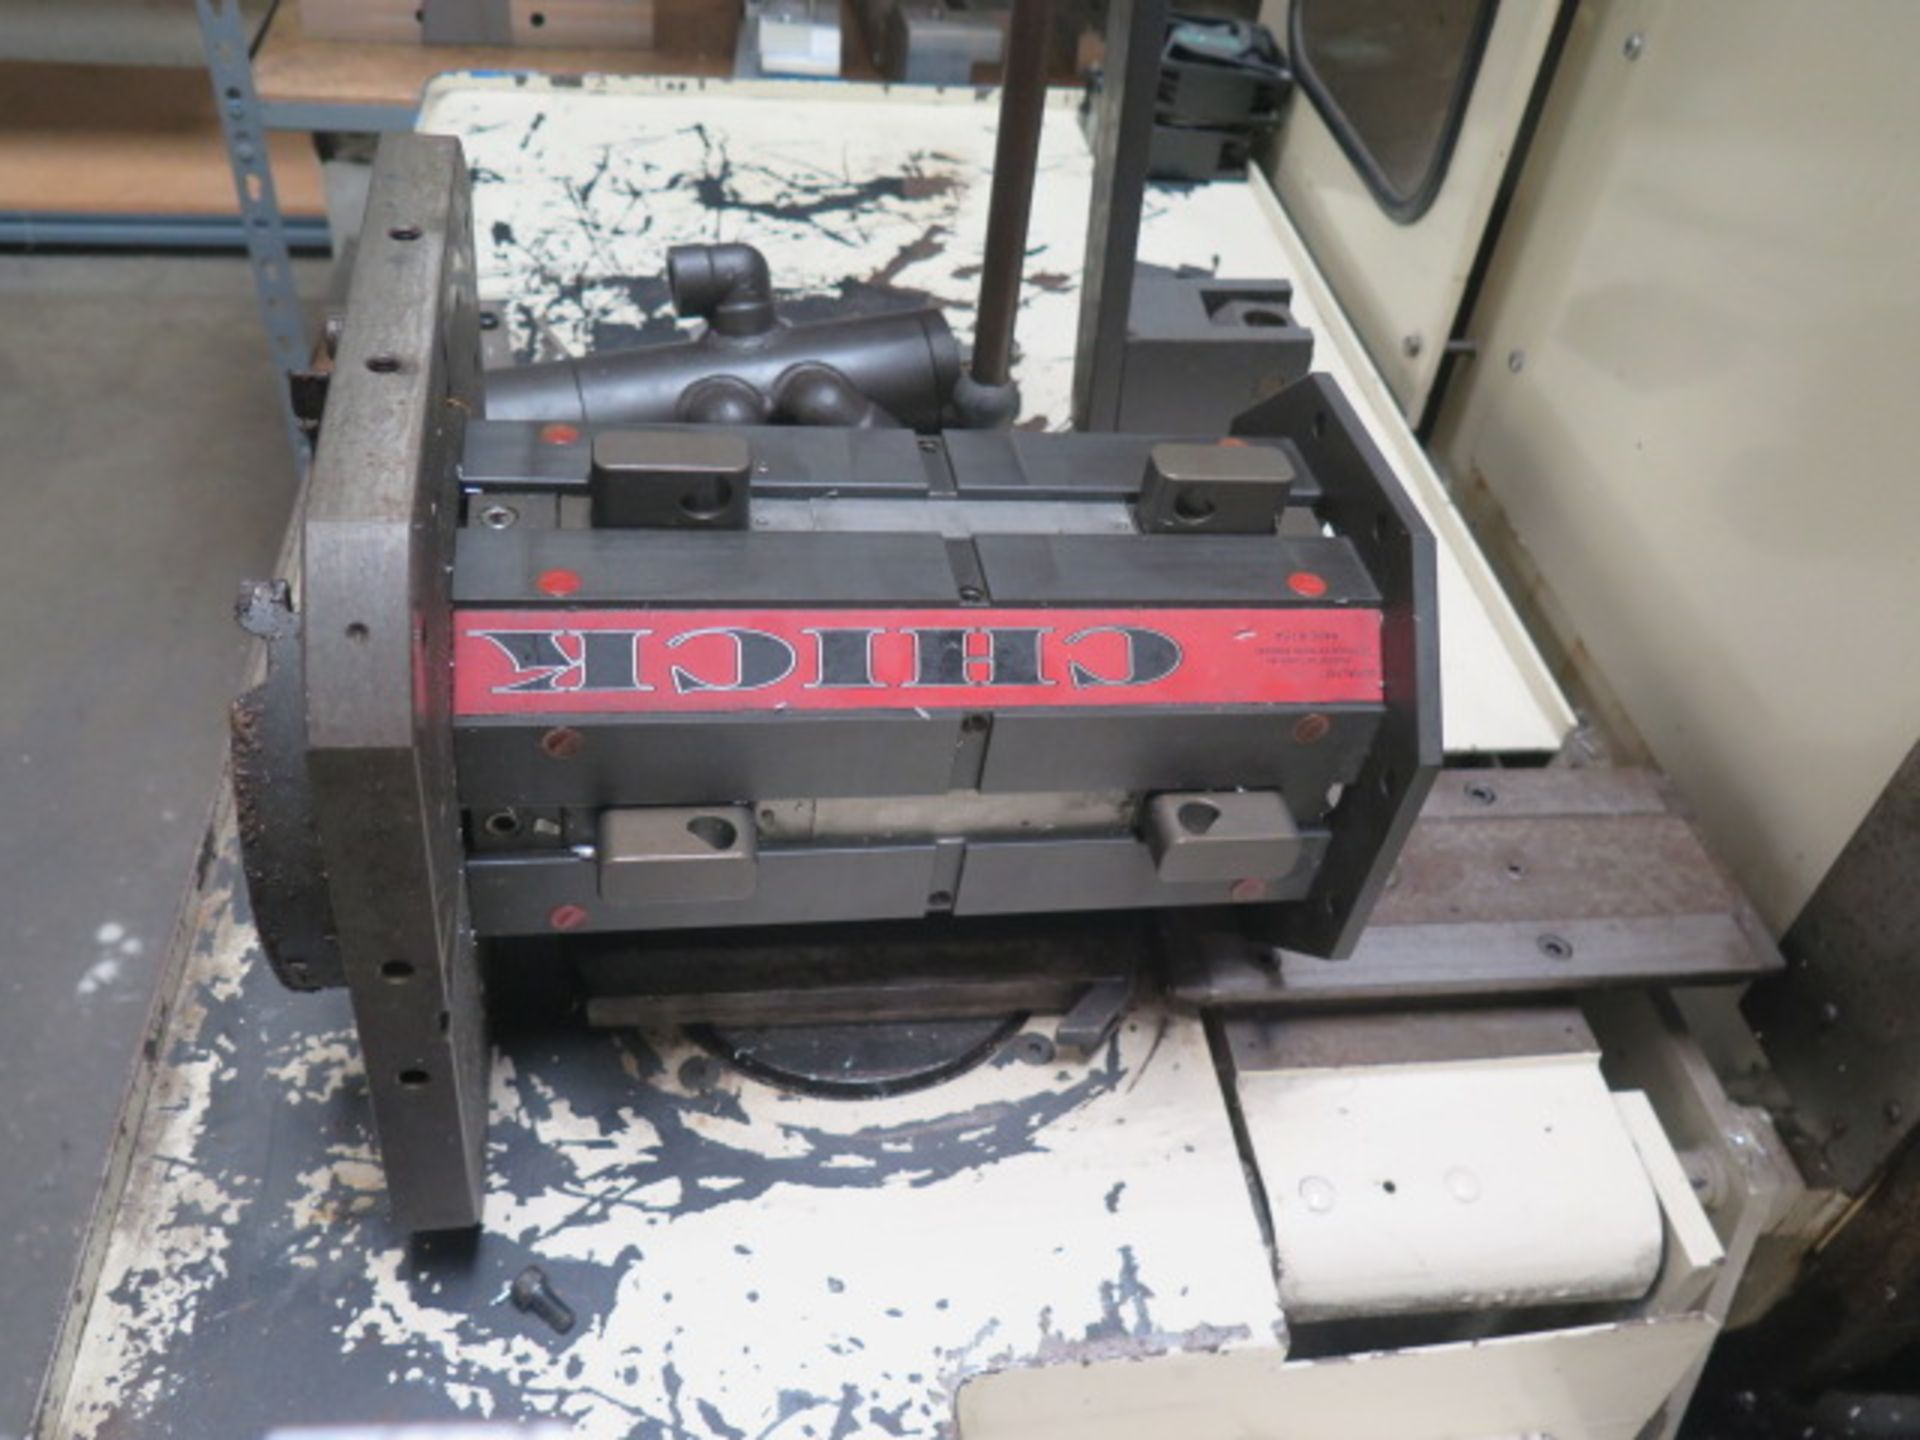 Tsugami MS3.10P Type MA3H 4-Axis 10-Pallet CNC HMC (HAS X-AXIS PROBLEM), SOLD AS IS - Image 14 of 20